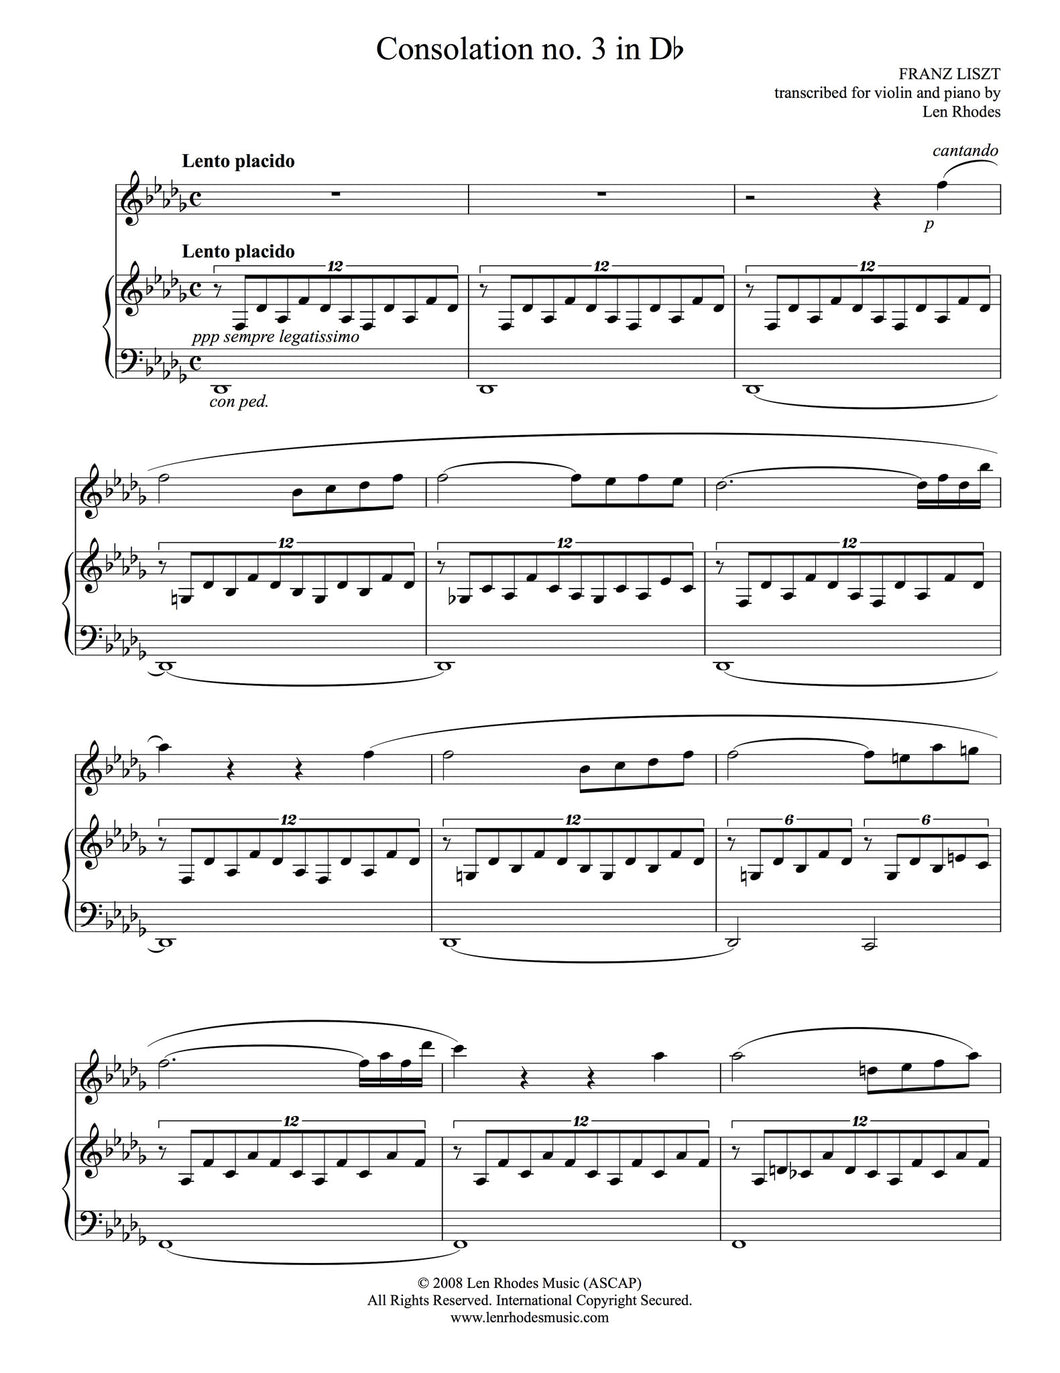 Liszt - Consolation in D flat, arranged for Violin and Piano